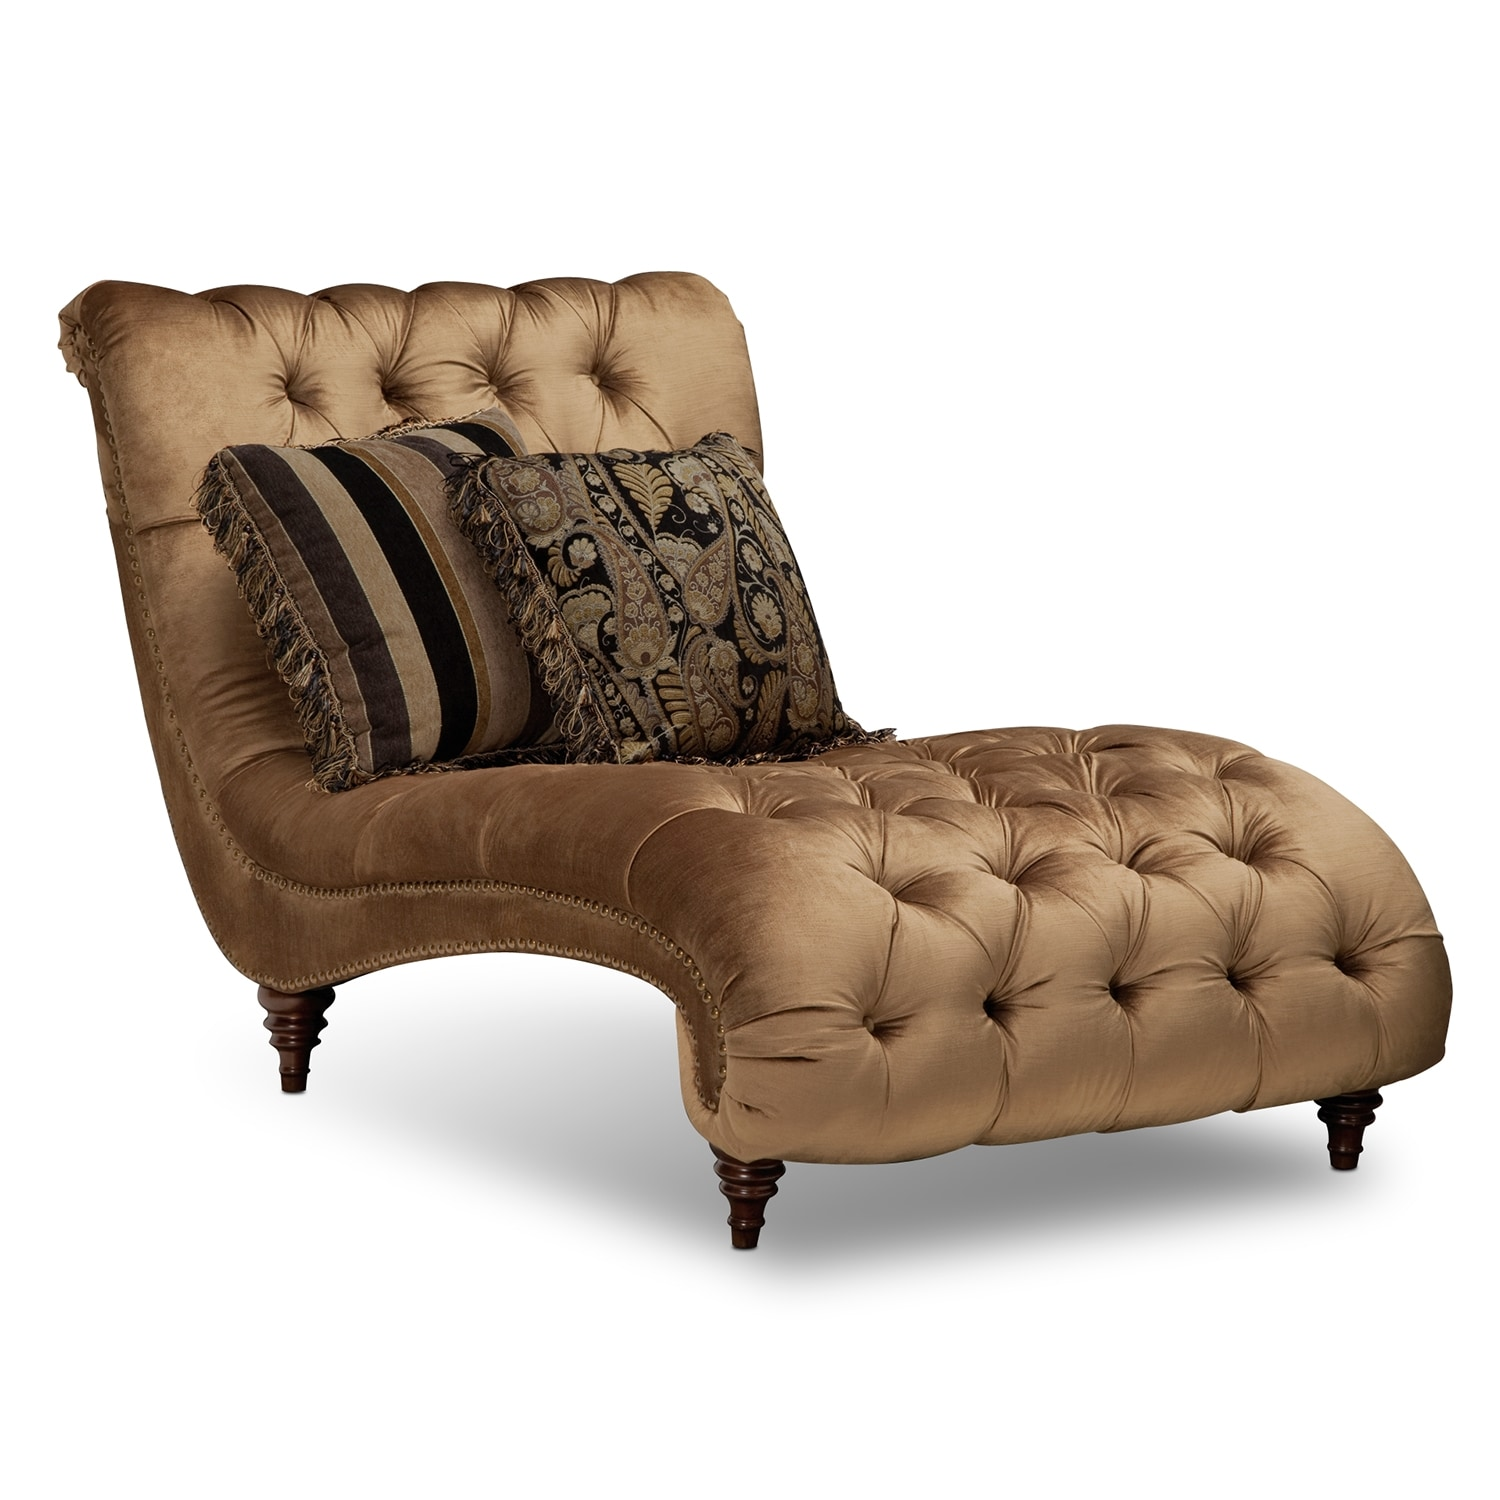 brittney bronze chaise value city furniture bedroom chaise long chair pink color bedroom lounge furniture